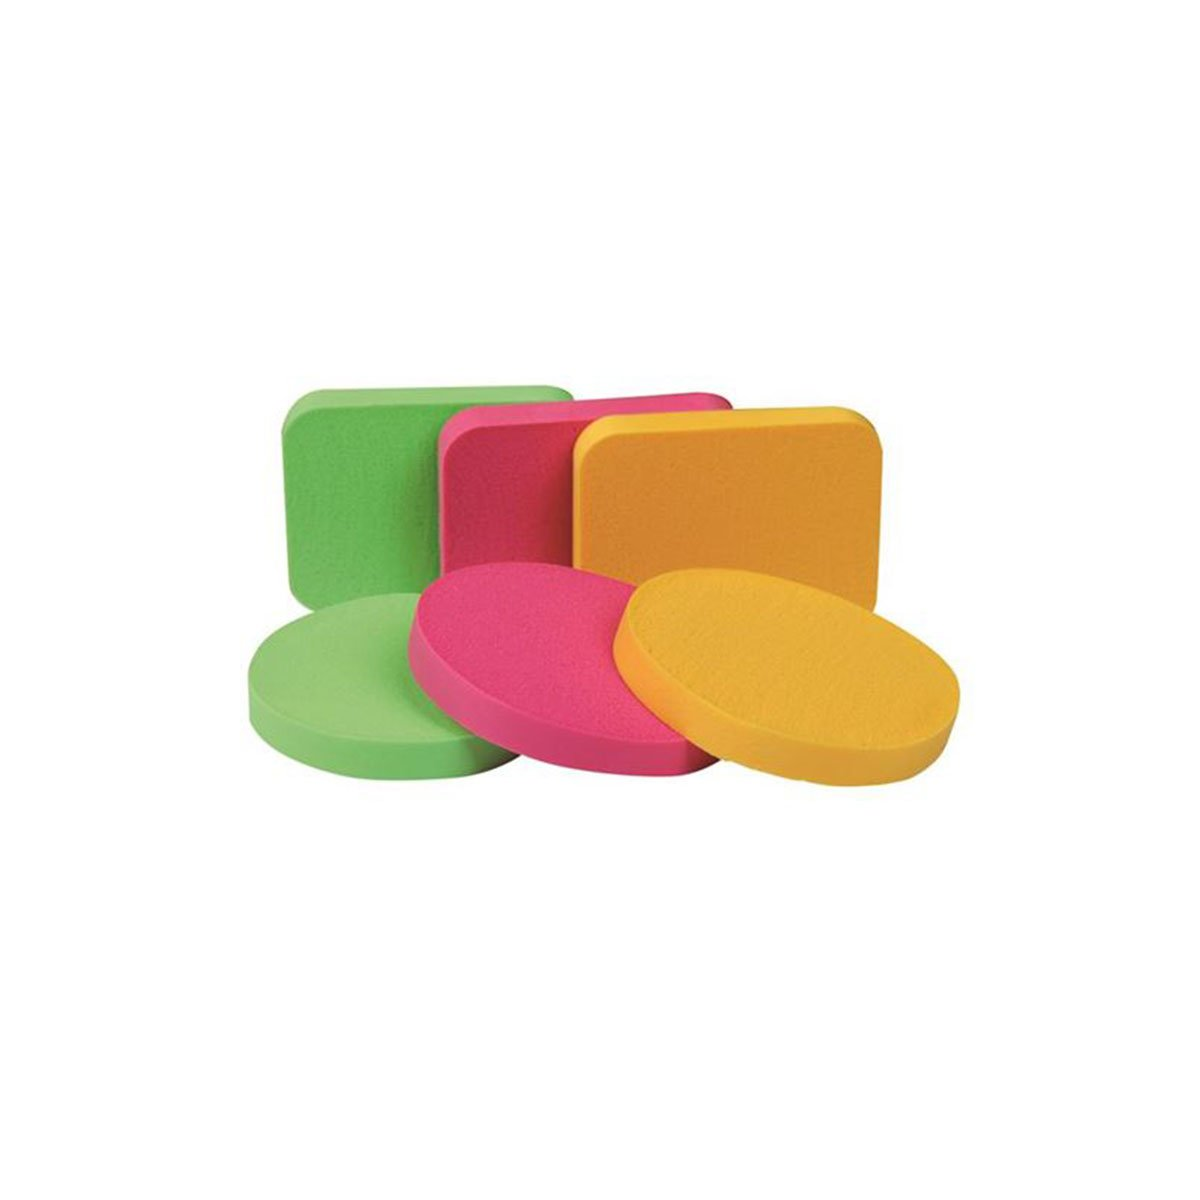 Nascita Do Make-Up Spongeduo Round/Square